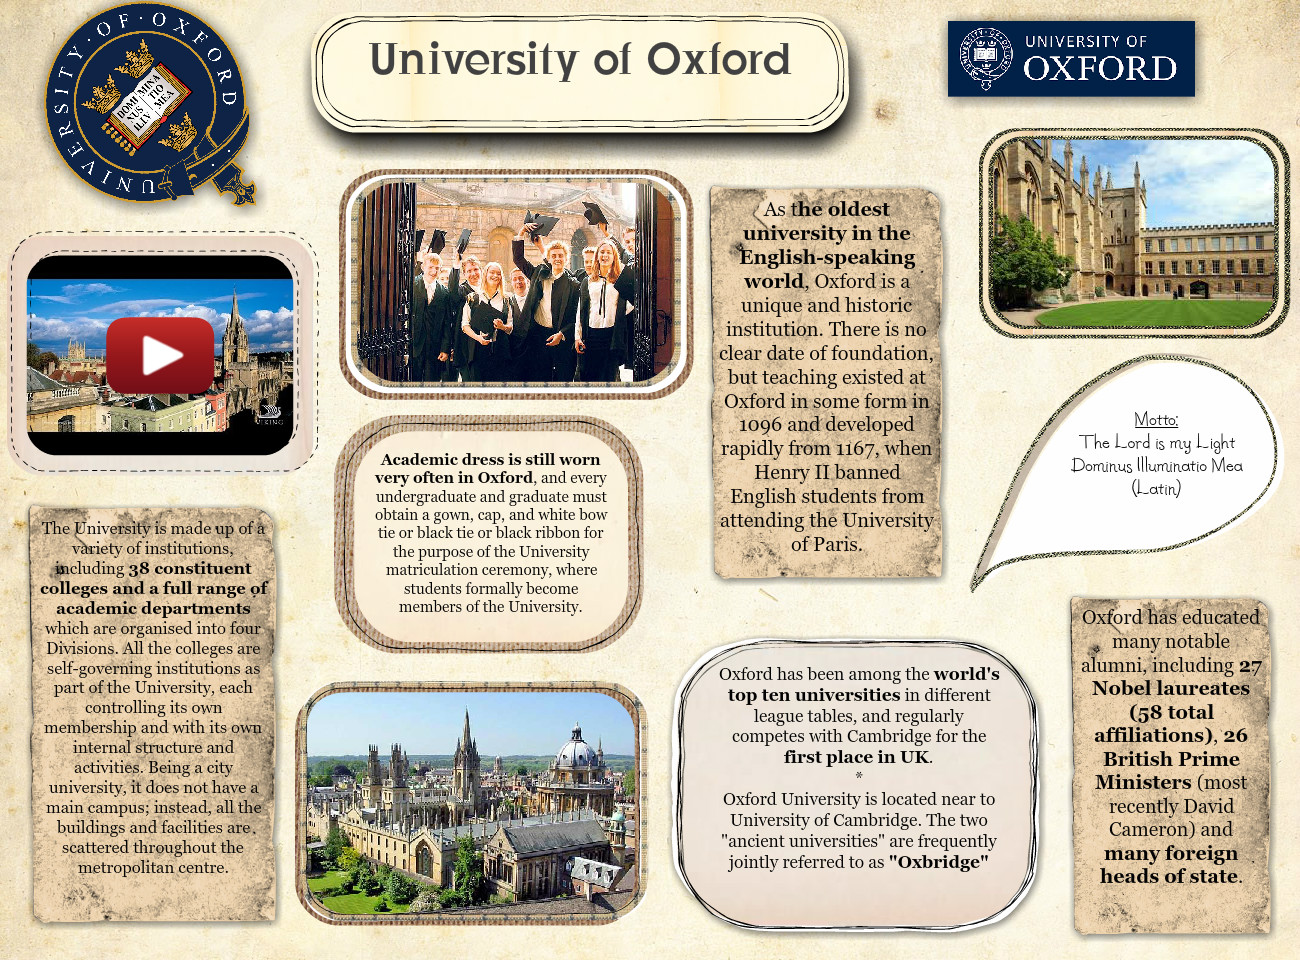 The University of Oxford